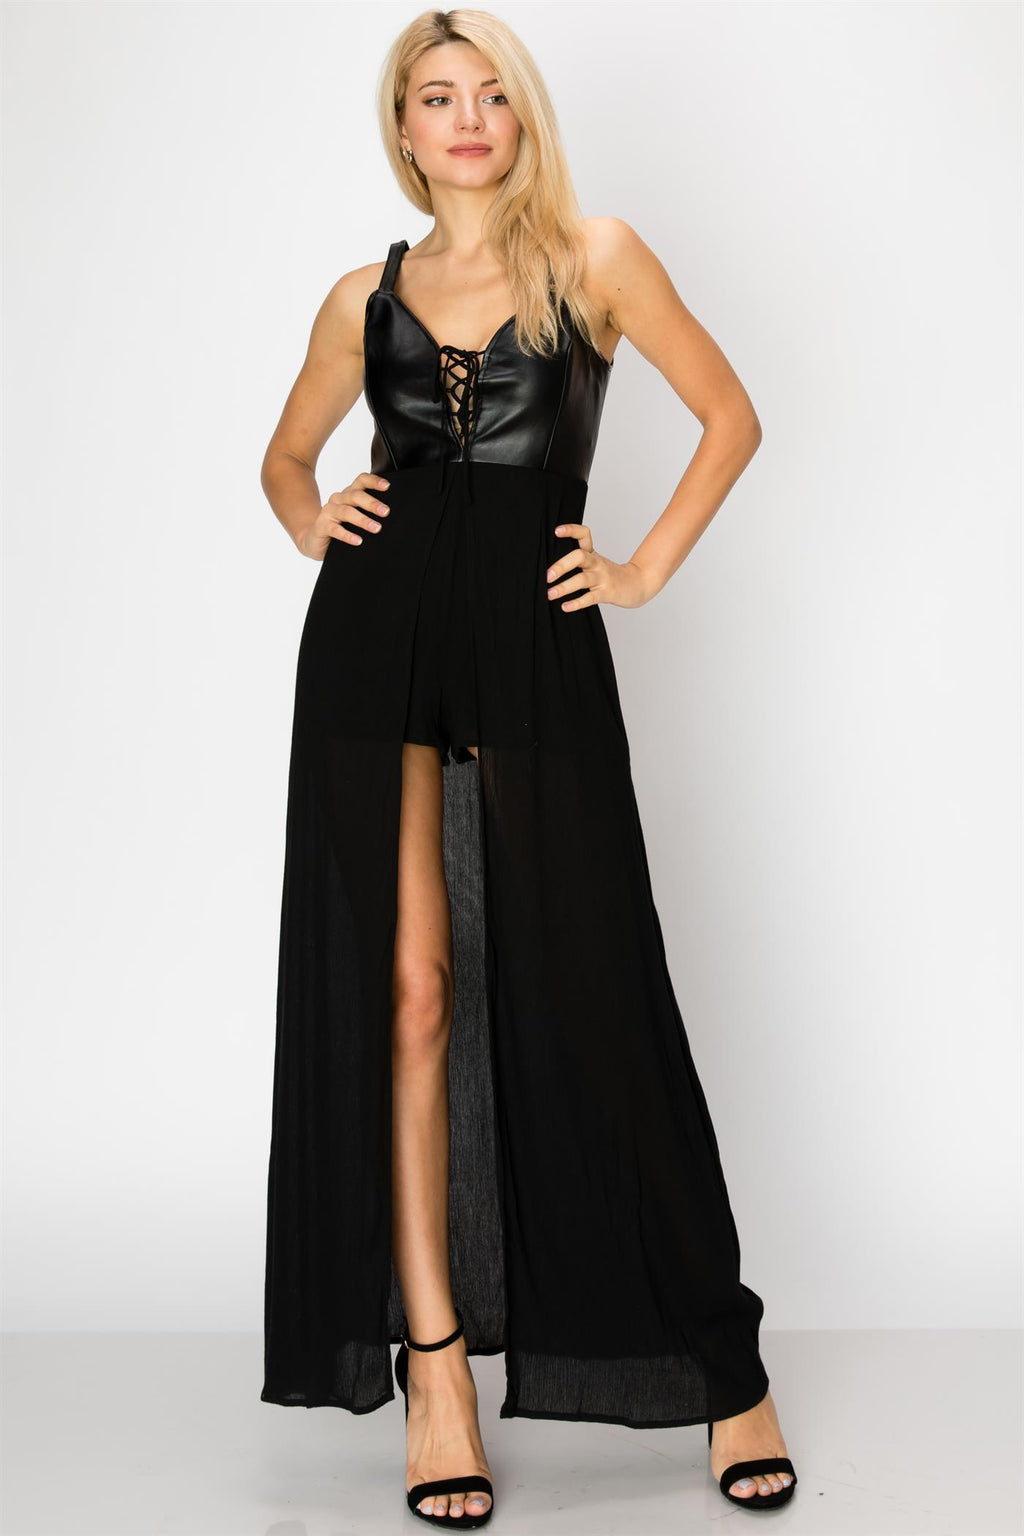 Thick Strap Leather Contrast Romper with Maxi Skirt Overlay & Tie Front Detail